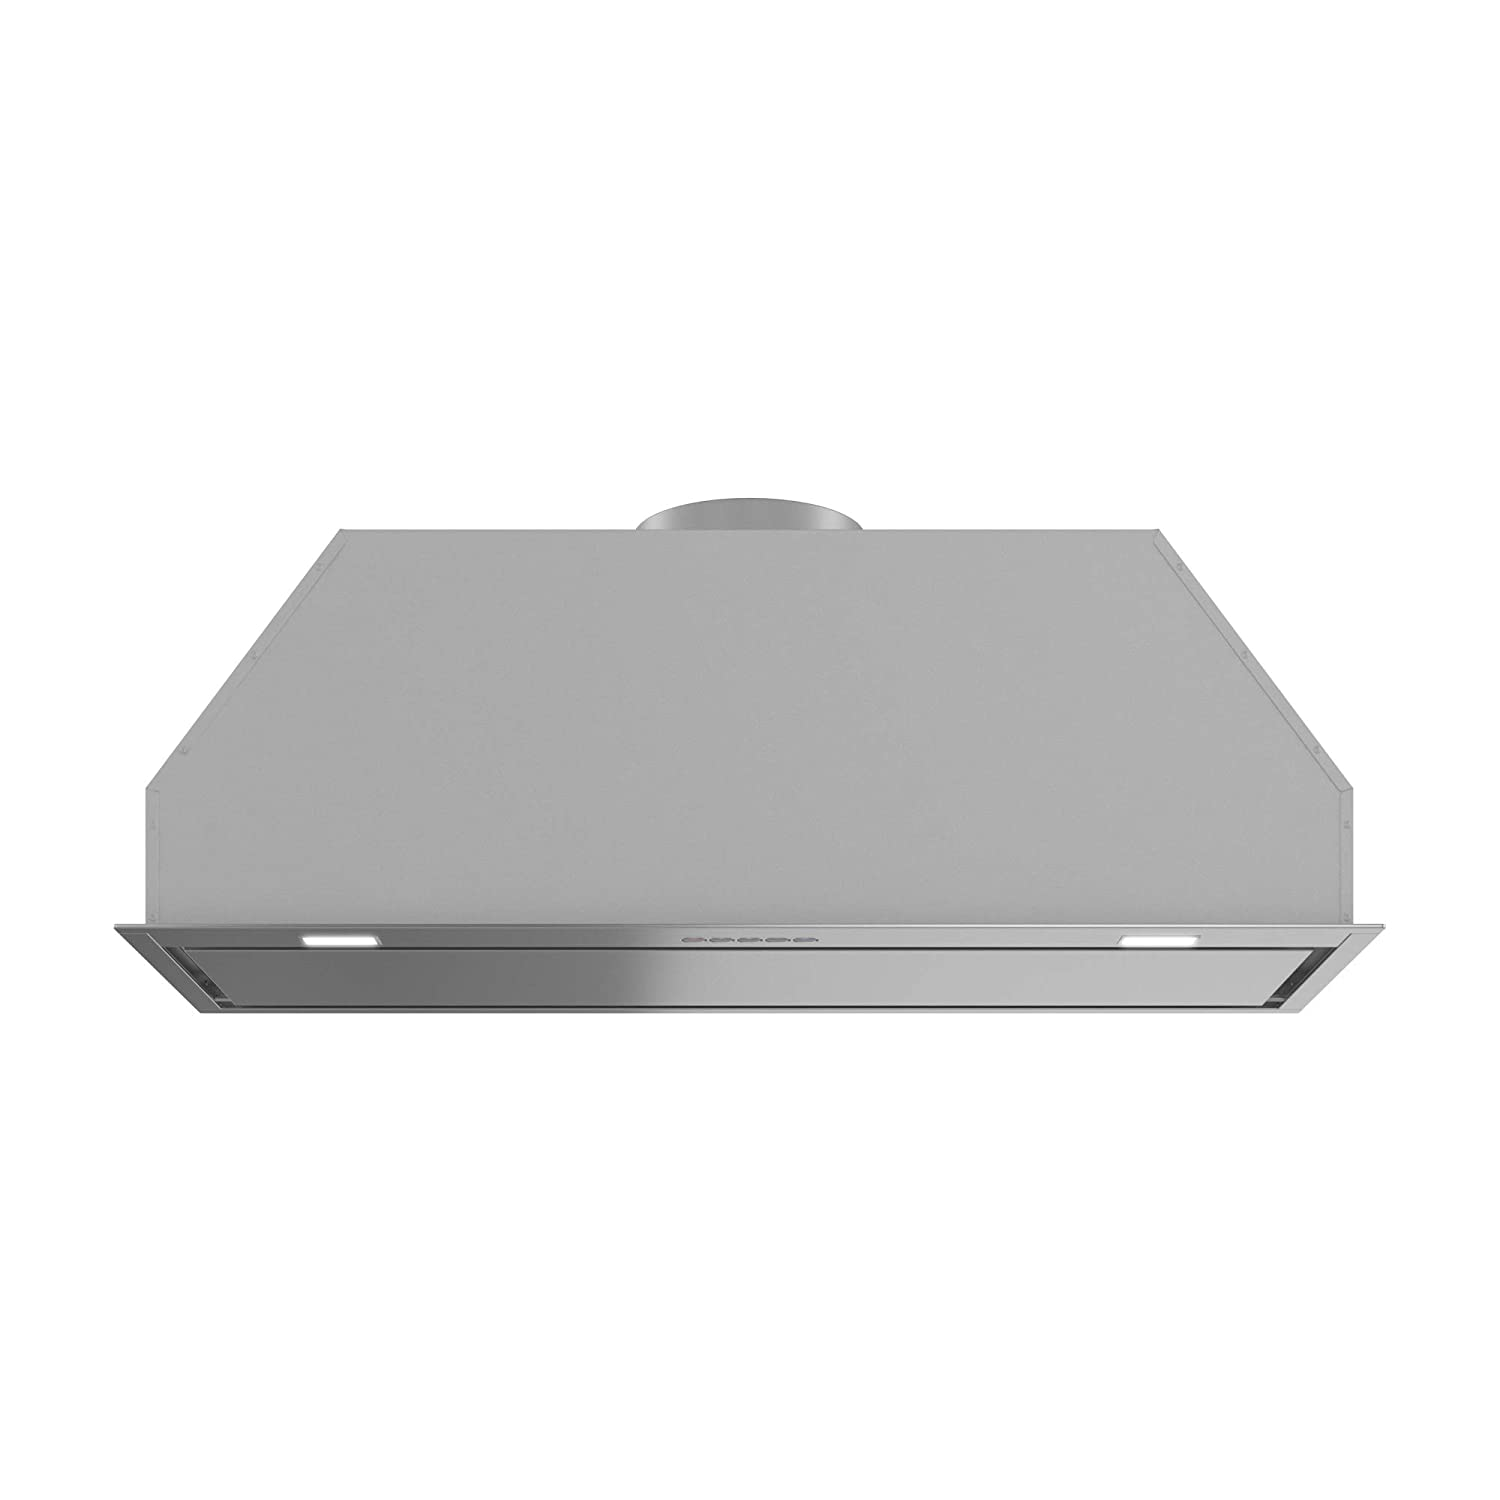 Futuro Futuro Insert-Liner 32 Inch Wall-mount In-Cabinet Range Hood - Italian Design Vent Hood Liner - Remote Control, LED, Ultra-Quiet, with Blower